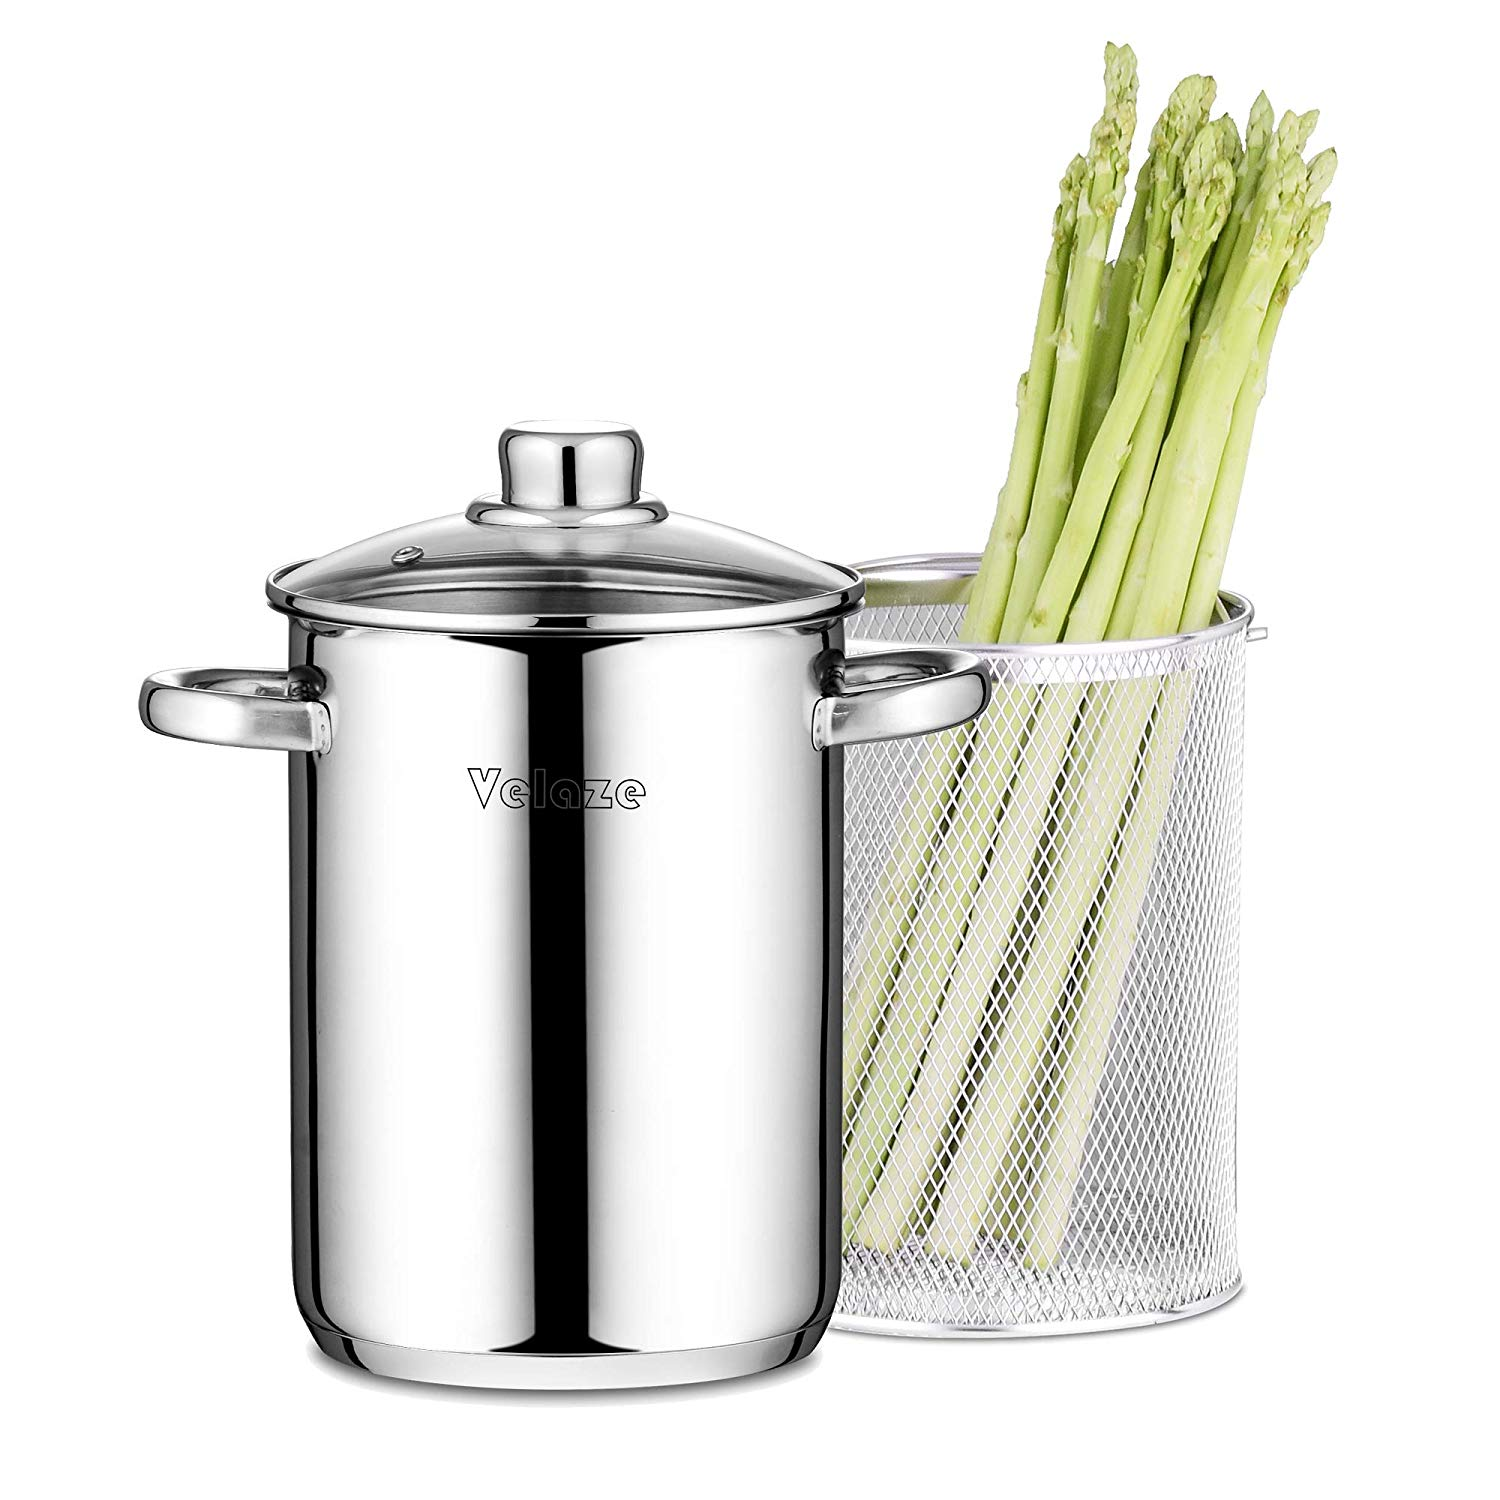 Velaze Asparagus Pot Stainless Steel 4L Vegetable Asparagus Steamer Pot With Basket And Lid Pasta Pot Stovetop Steamer Cooker